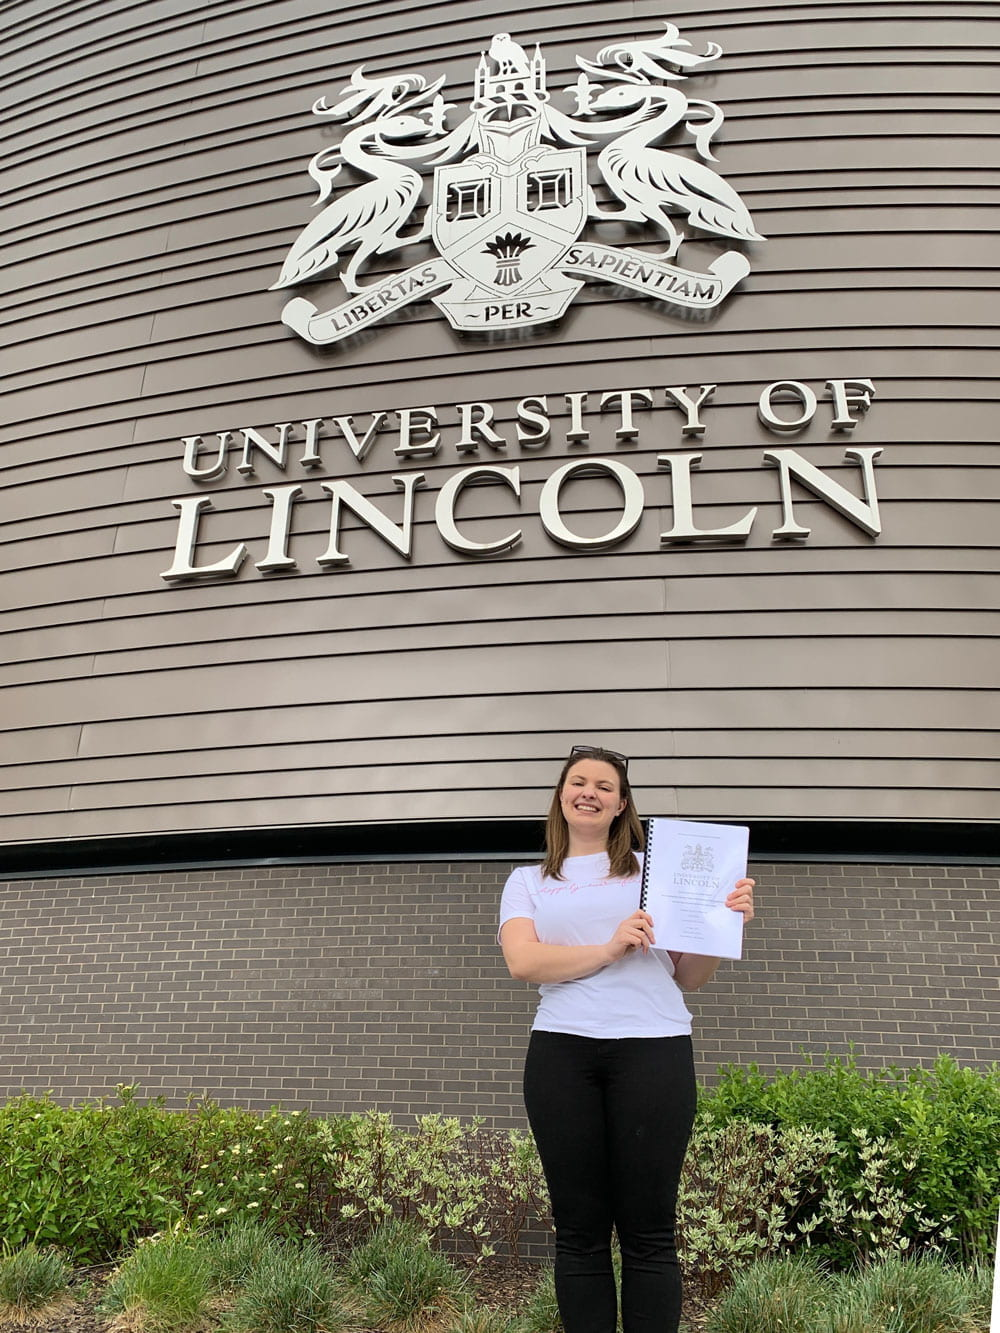 A young woman holding a dissertation and smiling in front of the University of Lincoln logo on a building